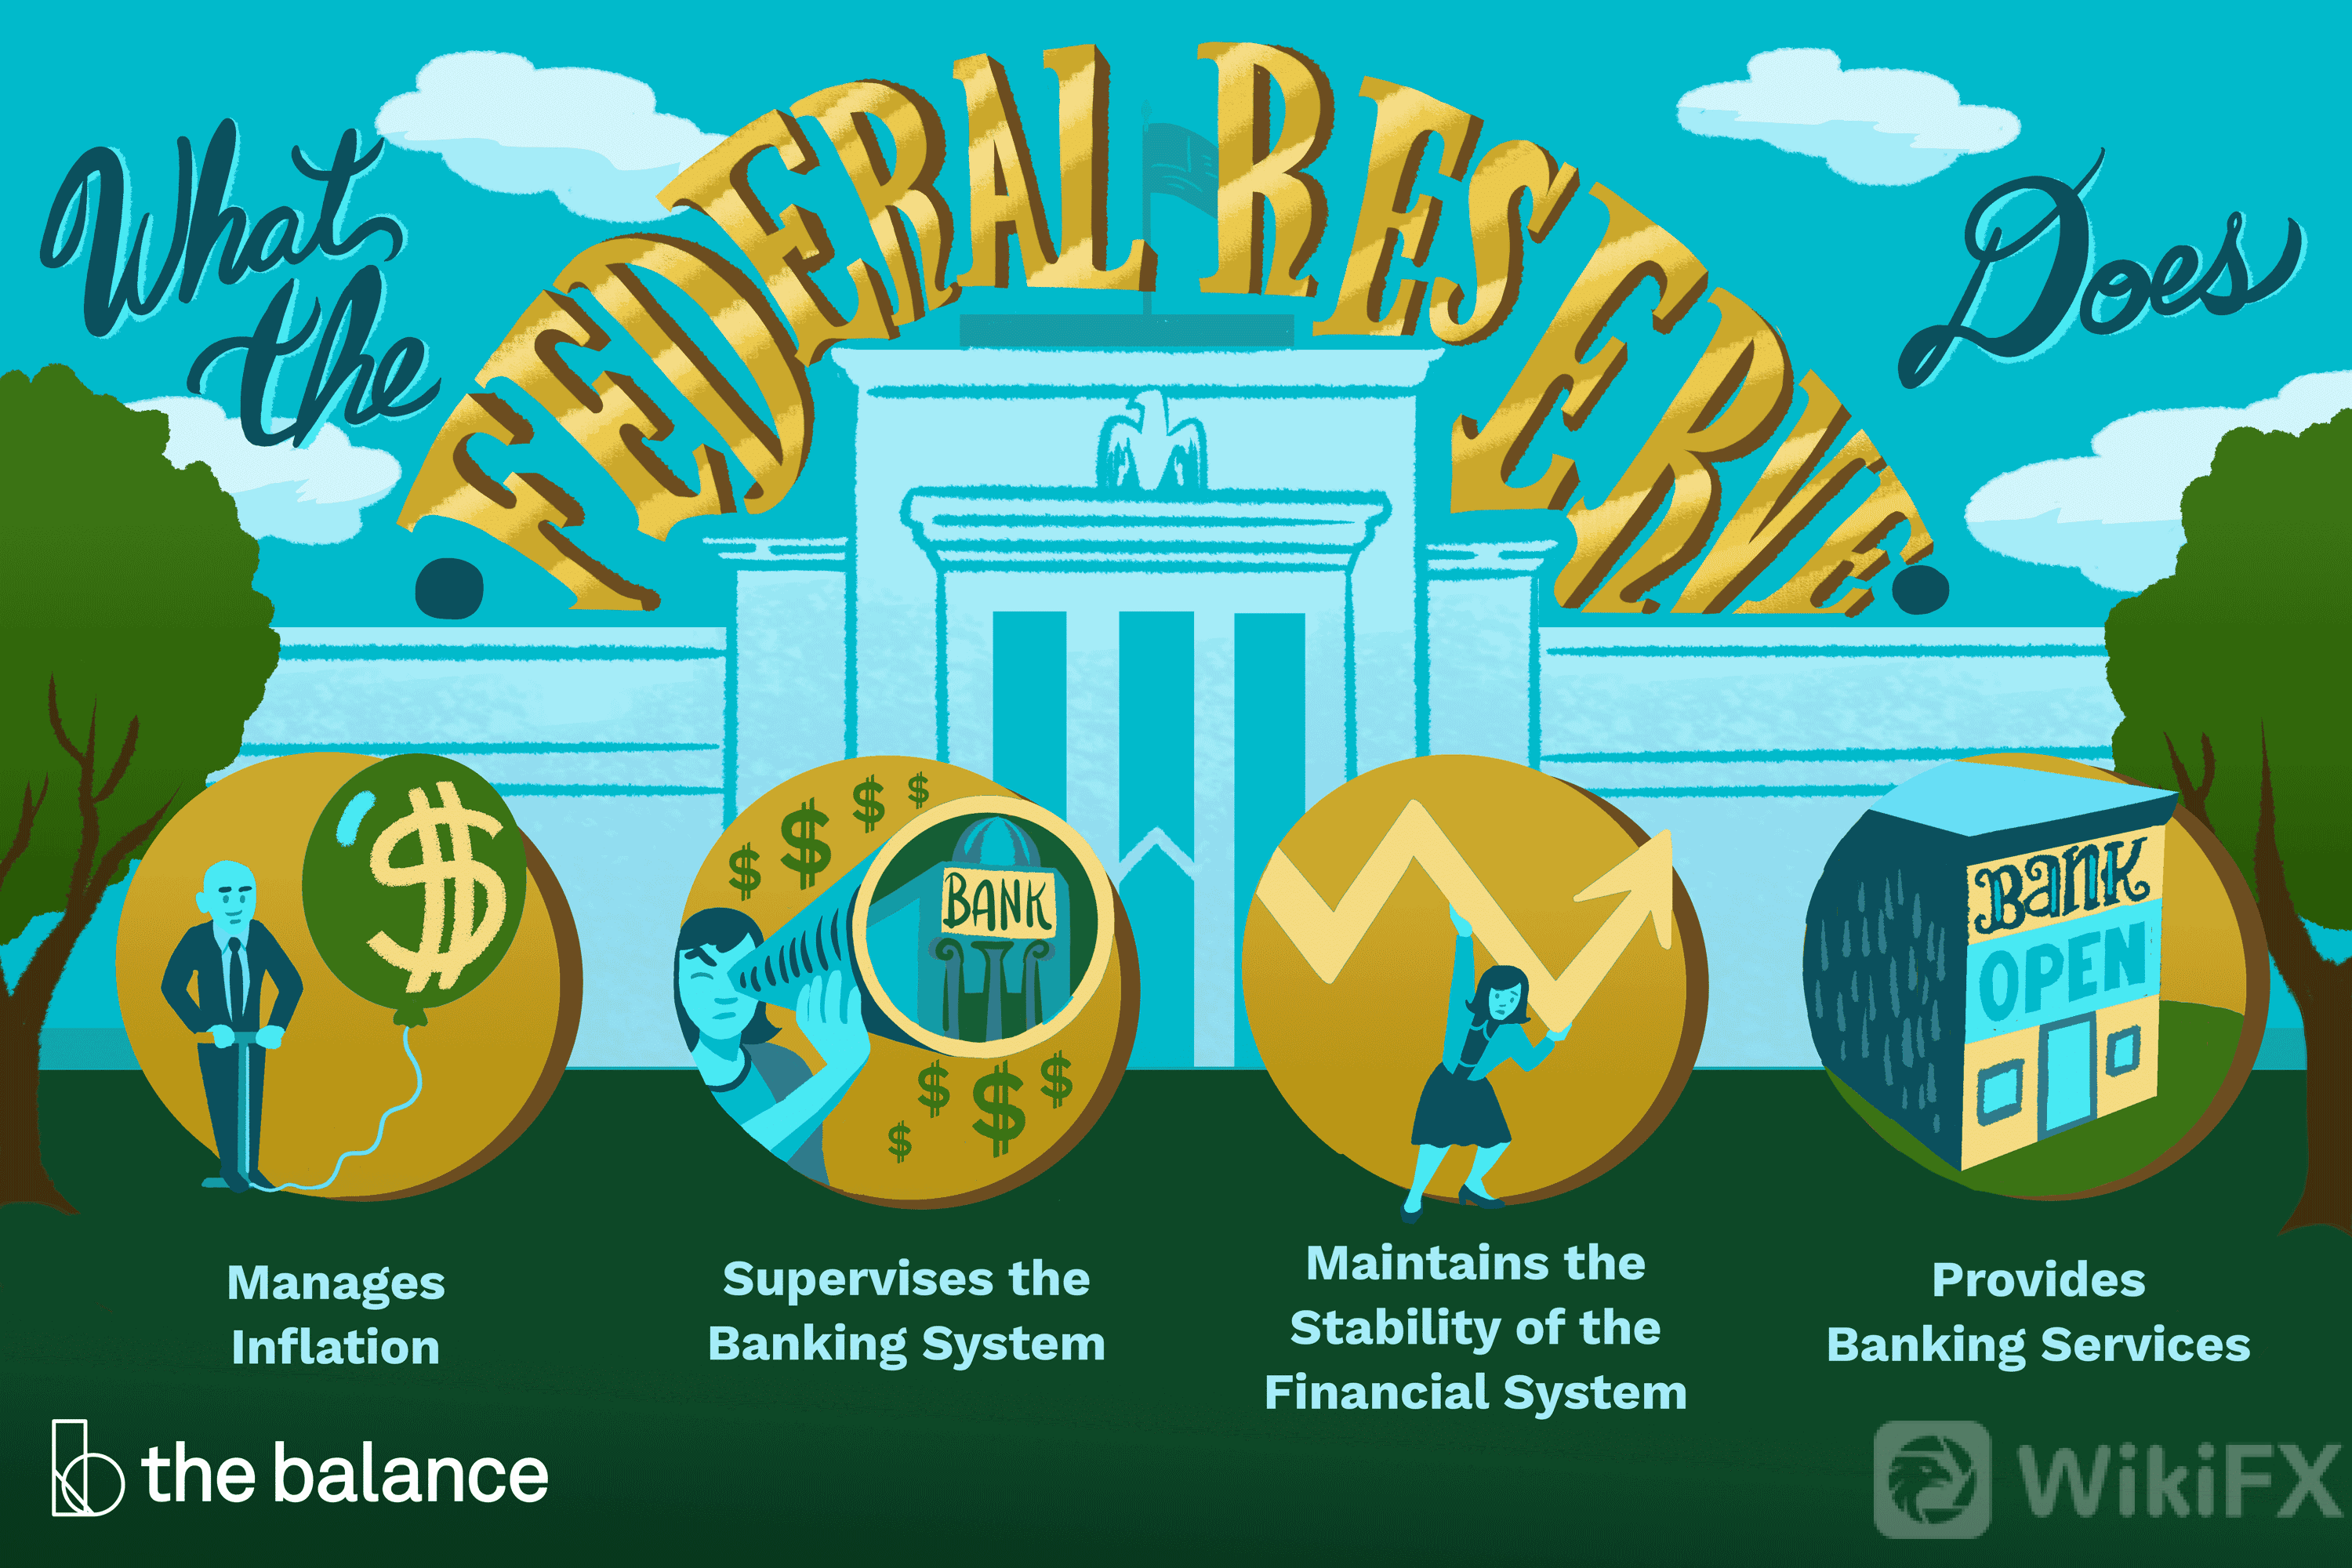 The-federal-reserve-system-and-its-function-3306001_final-7ed205221ee243f0bfa72b8b27226282.png